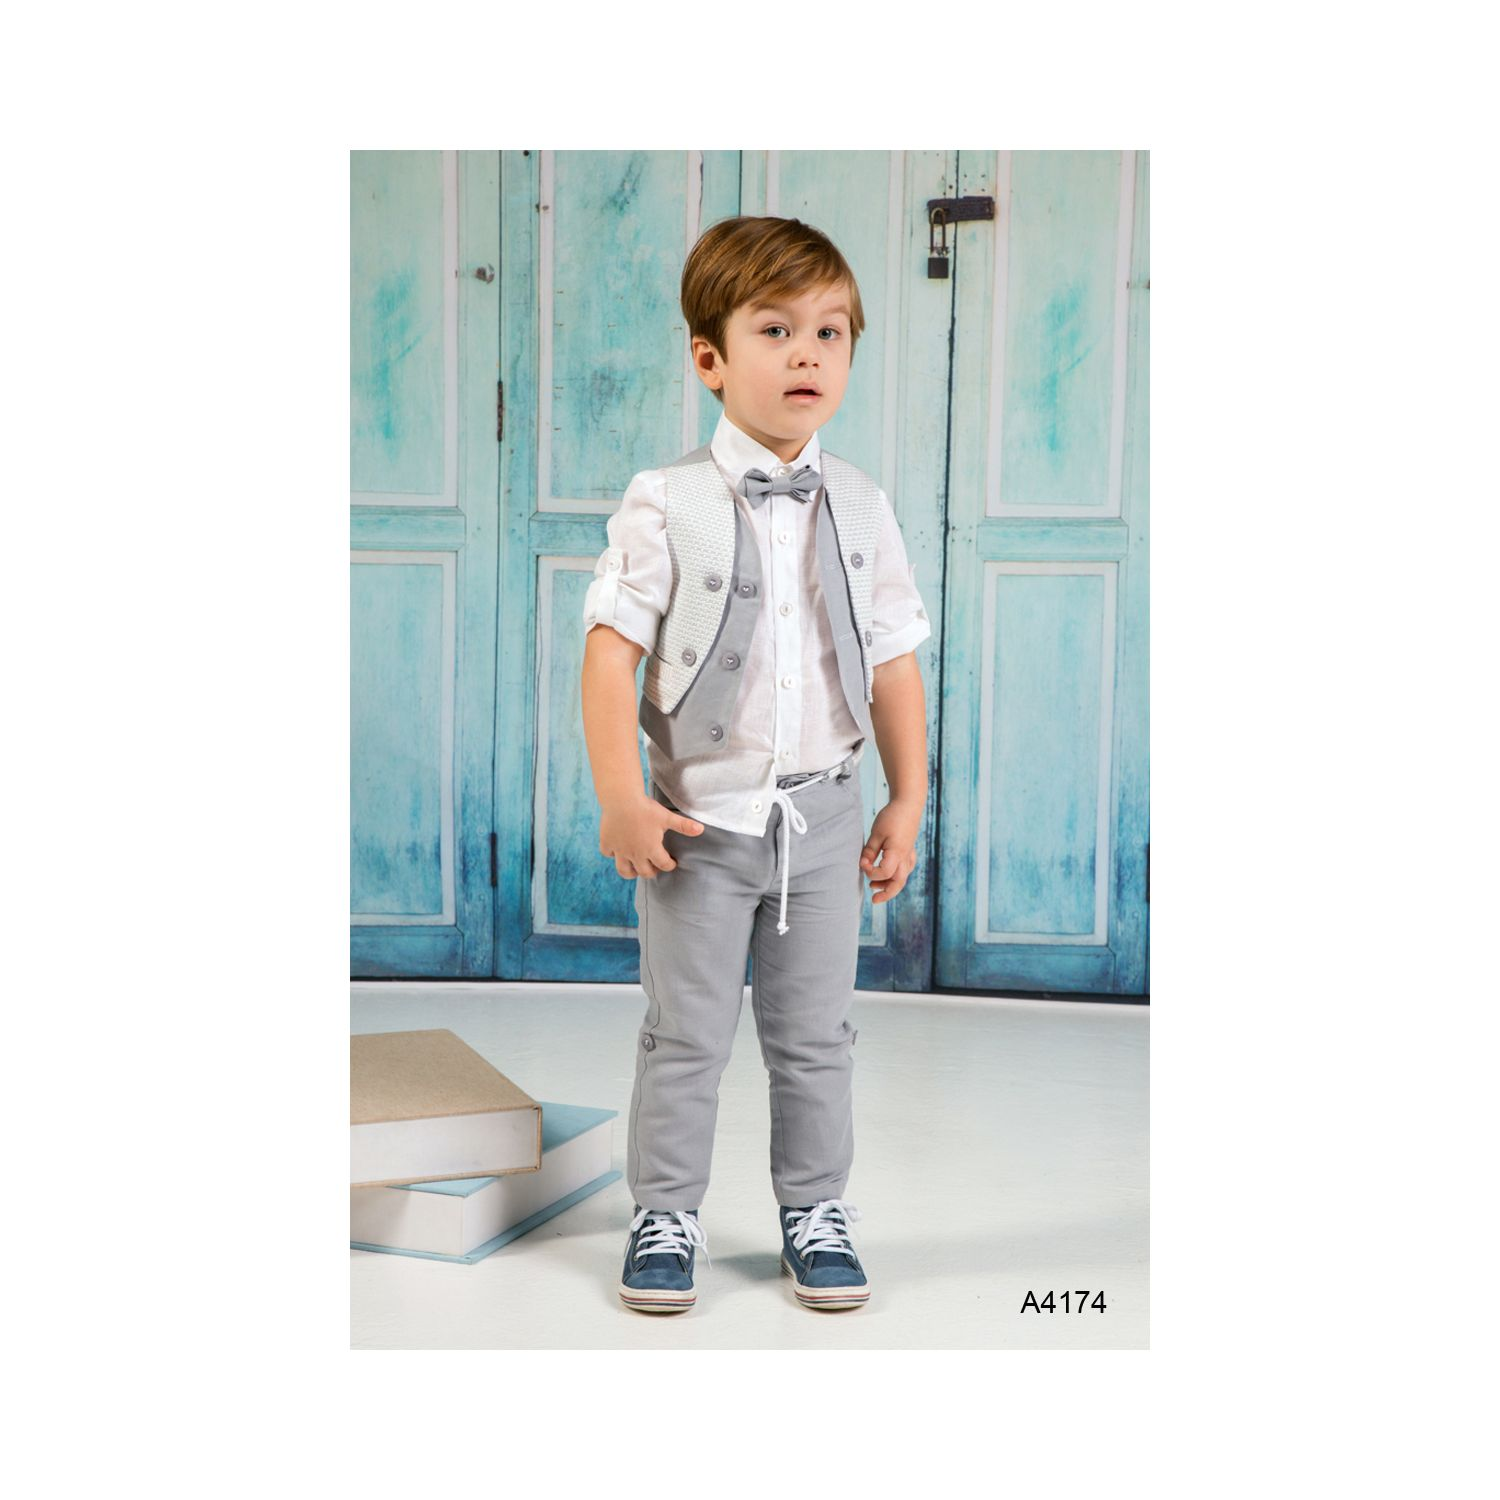 Summer baptismal clothes for boys A4174